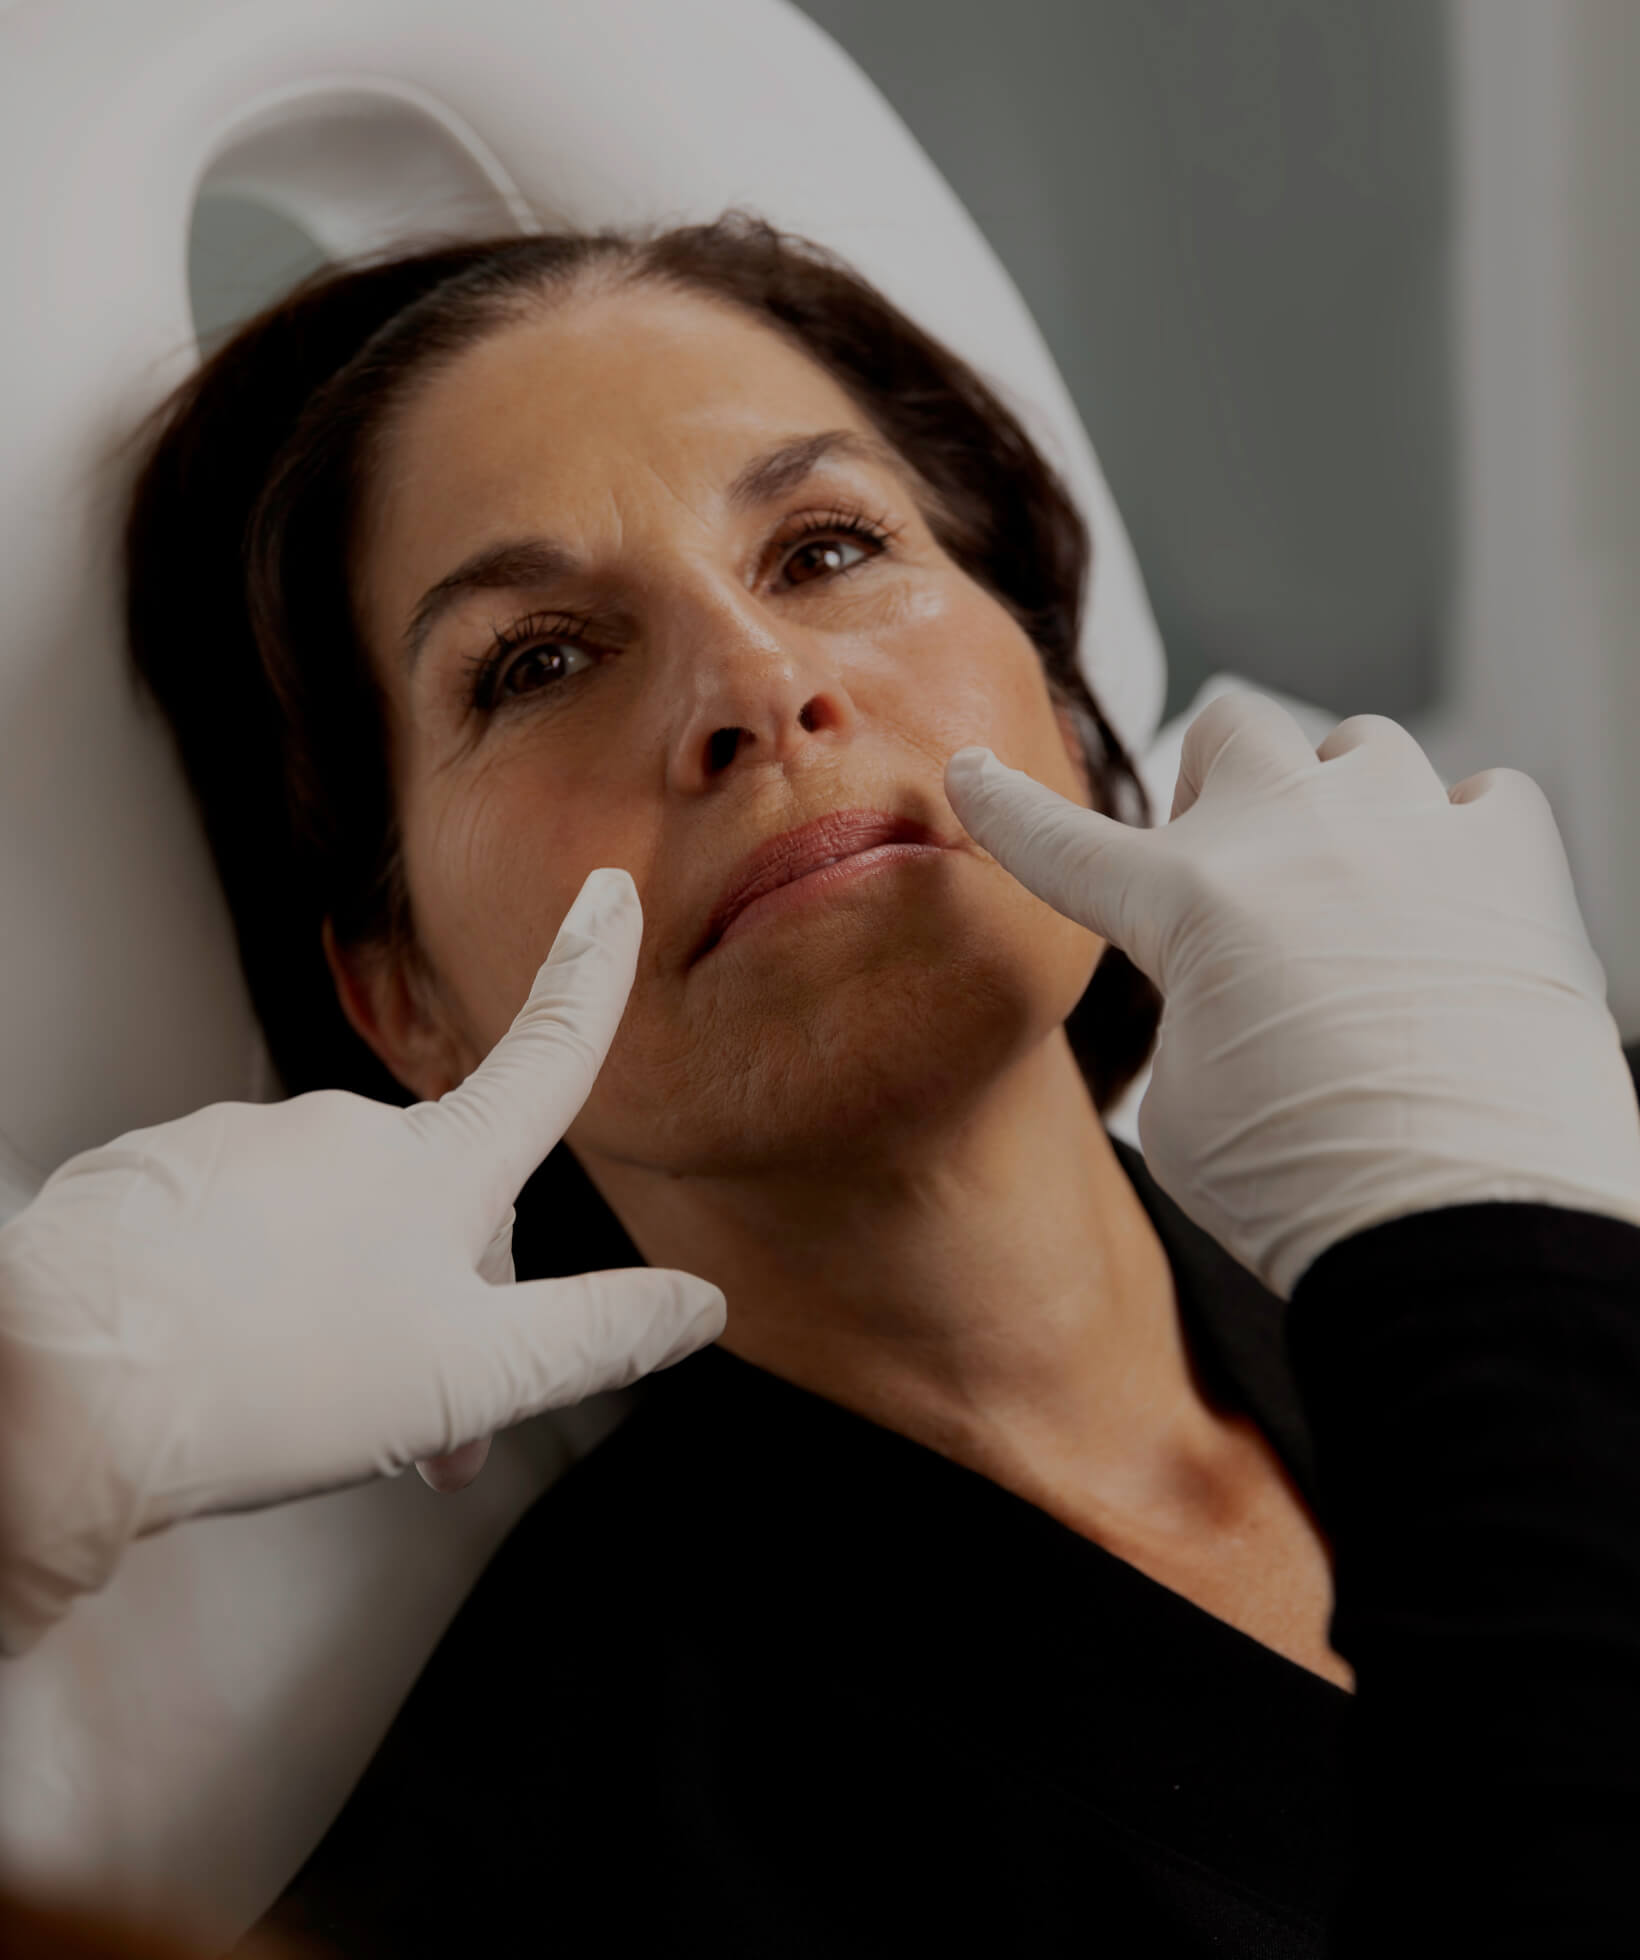 A medico-aesthetic technician from Clinique Chloé demonstrating the nasolabial folds of a female patient